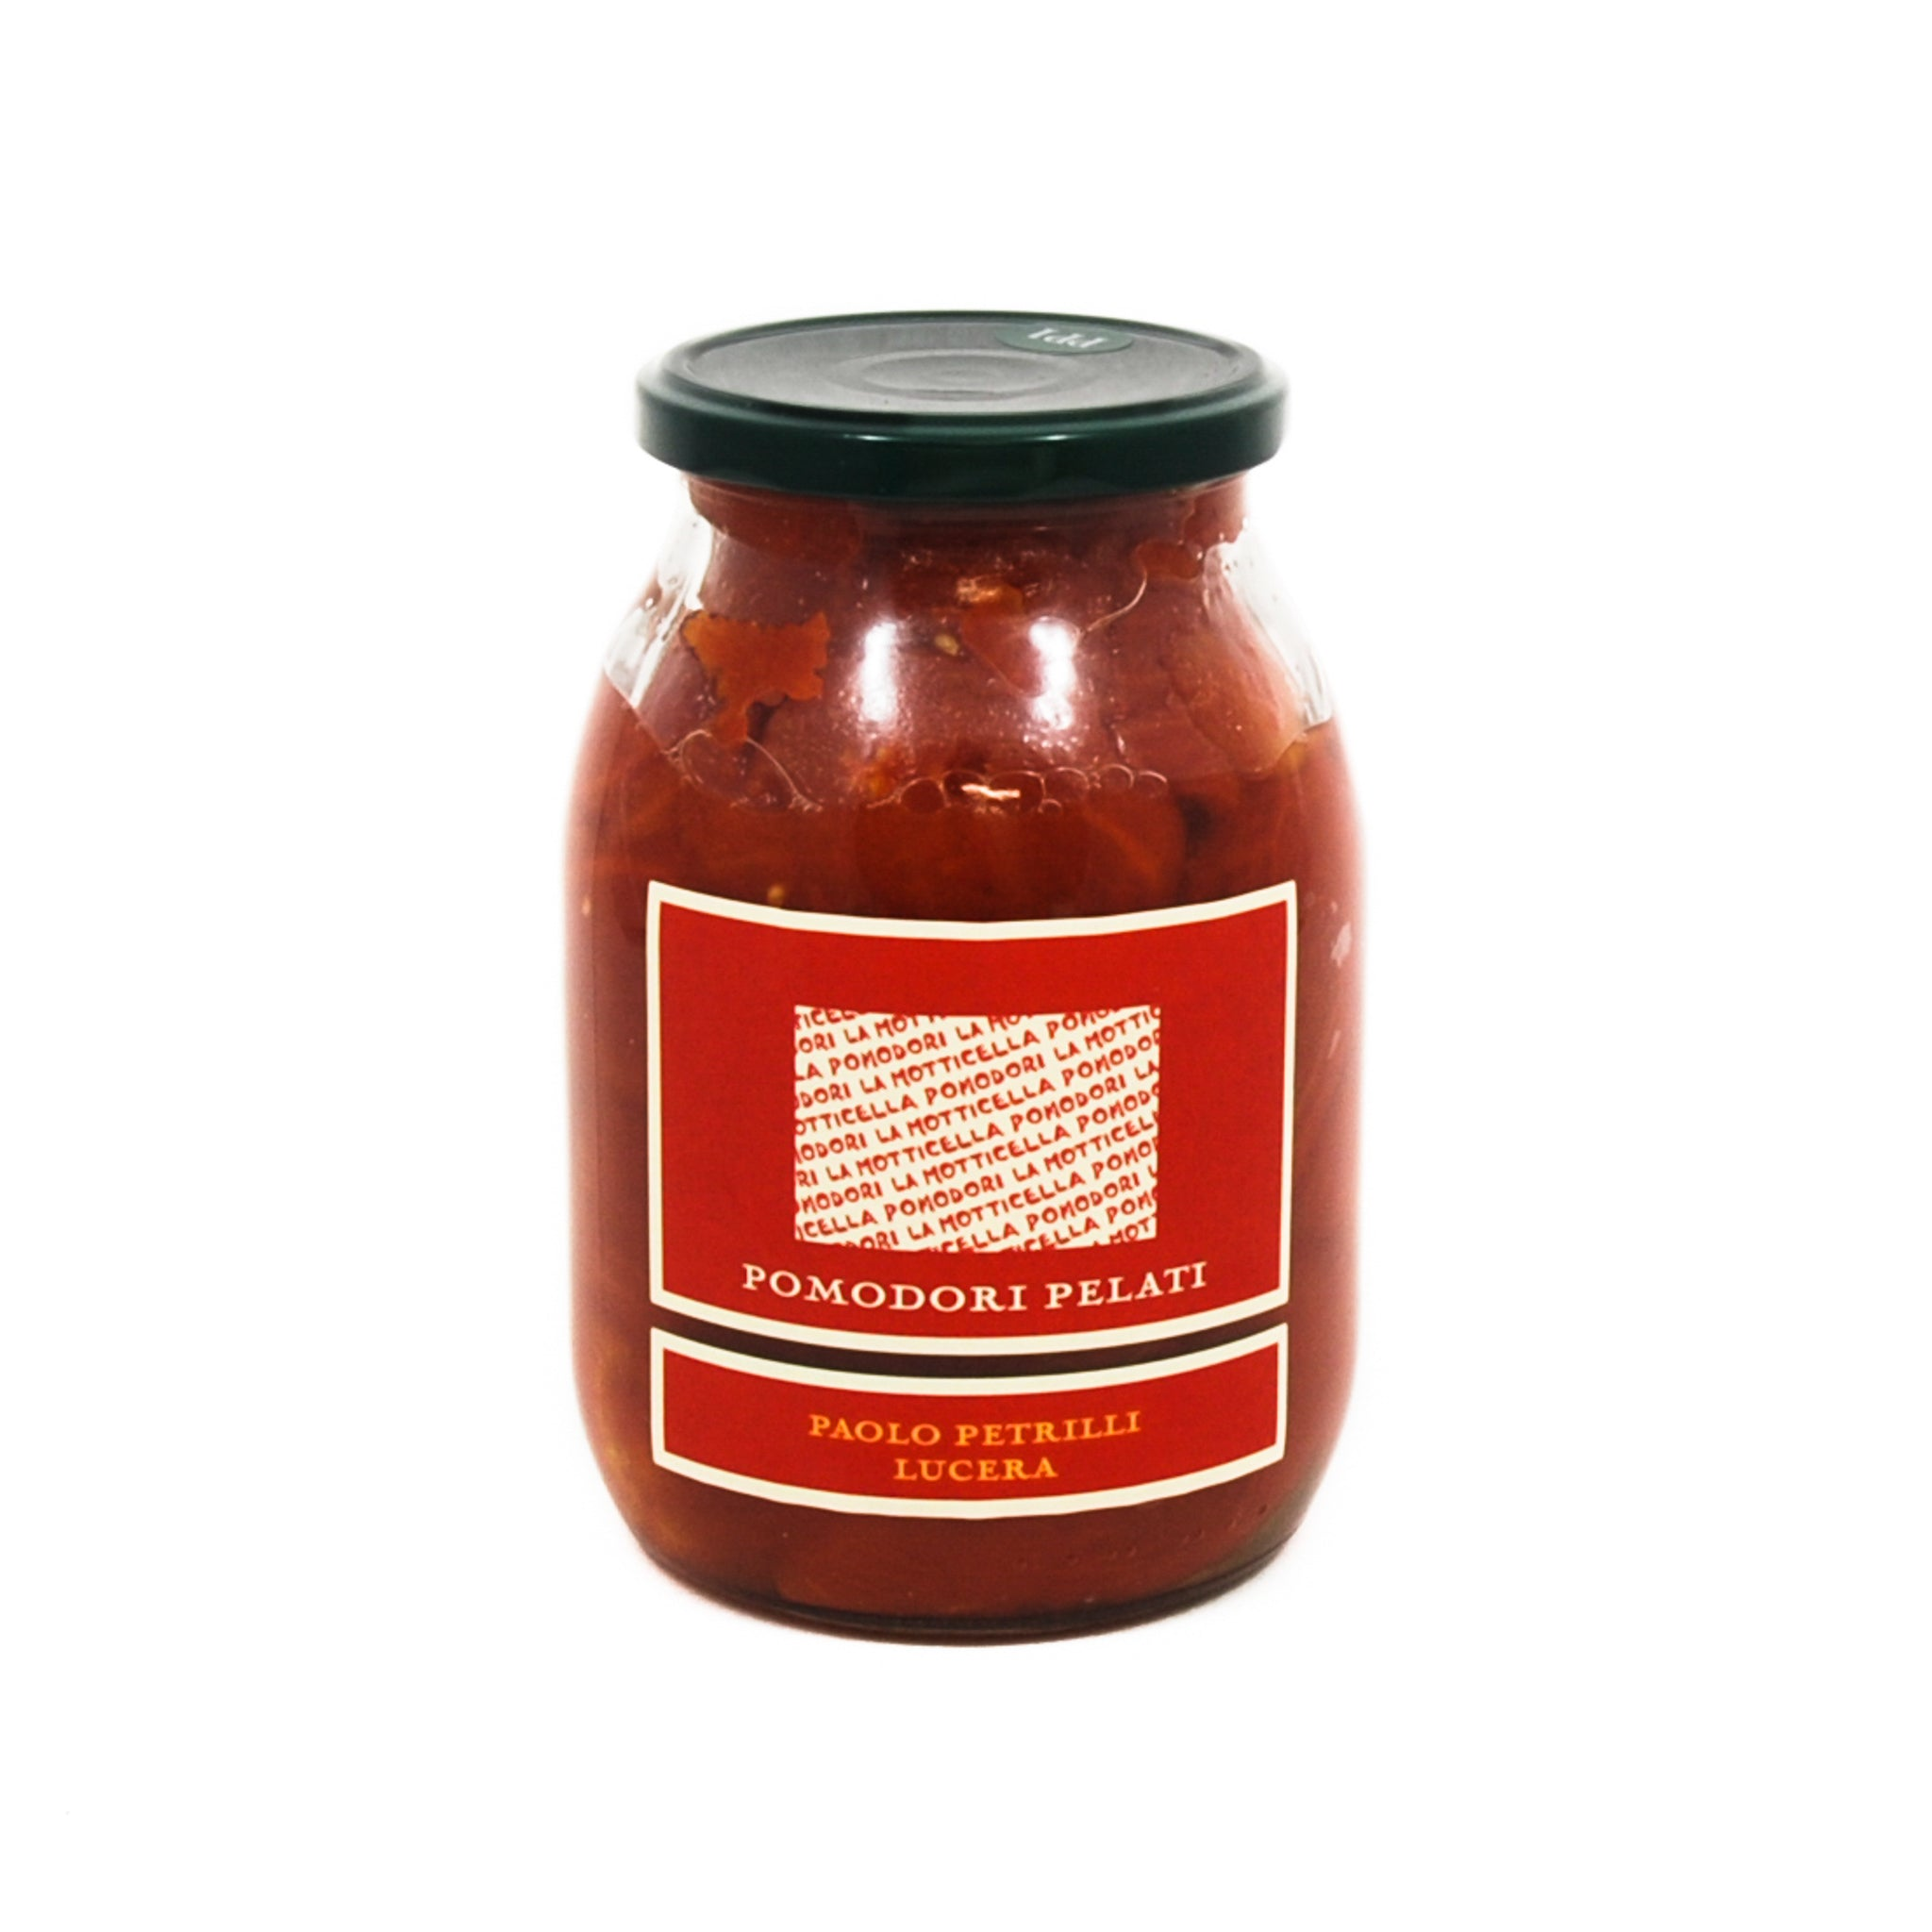 Paolo Petrilli Organic Peeled Tomatoes 1062ml Ingredients Pickled & Preserved Vegetables Italian Food